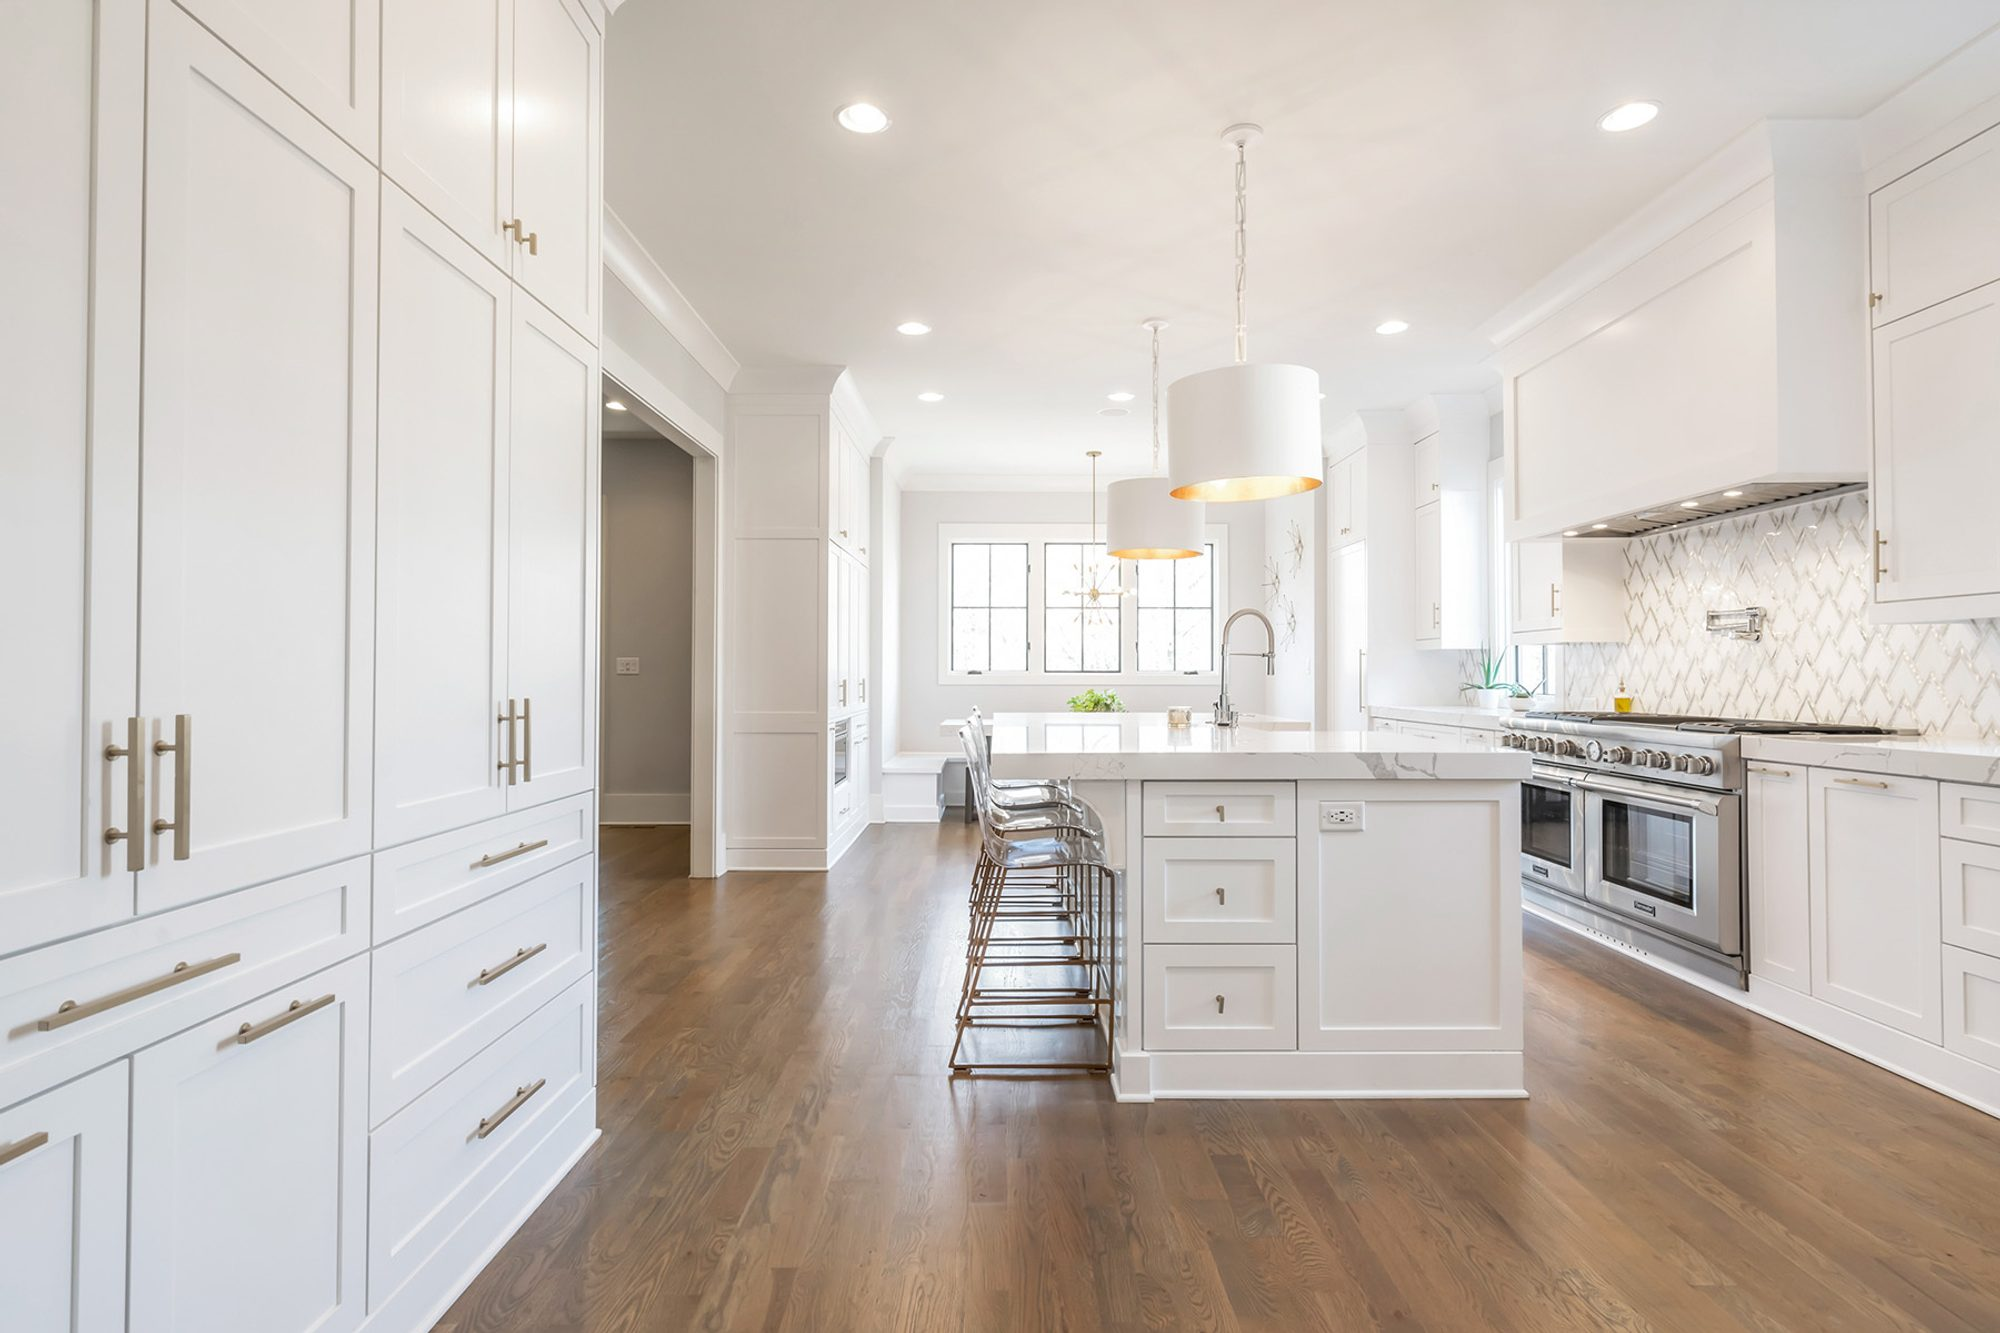 White kitchen cabinets with matching white backsplash, countertops and lighting.